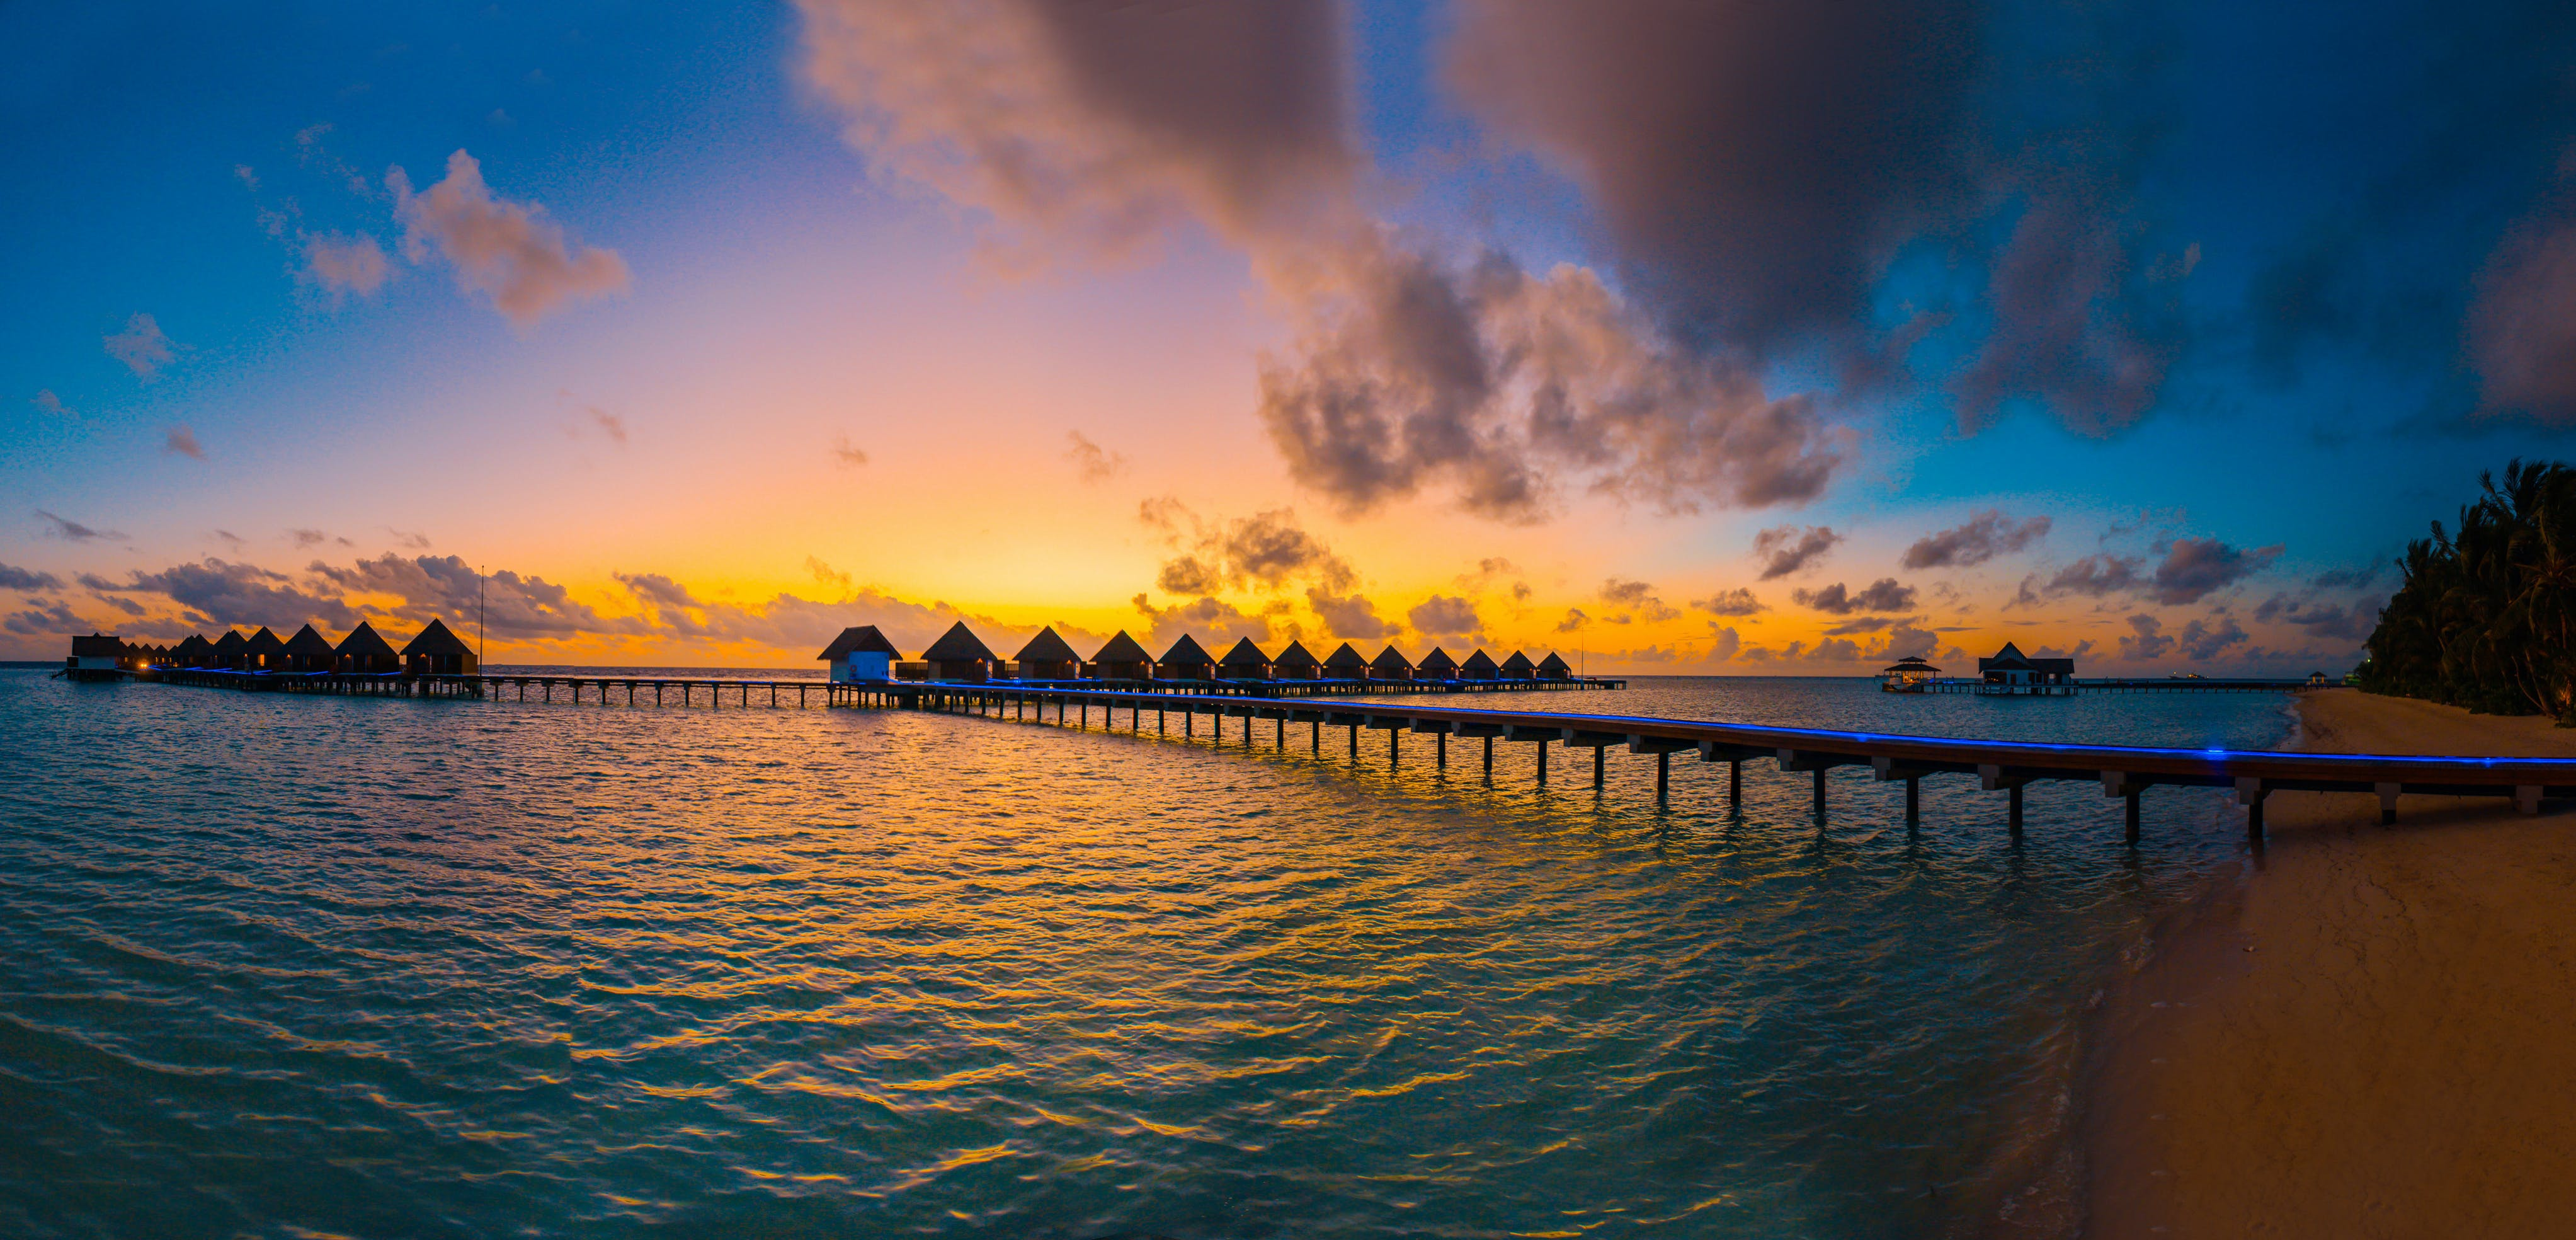 Silhouette Photography of In-lined Cottages in Sea